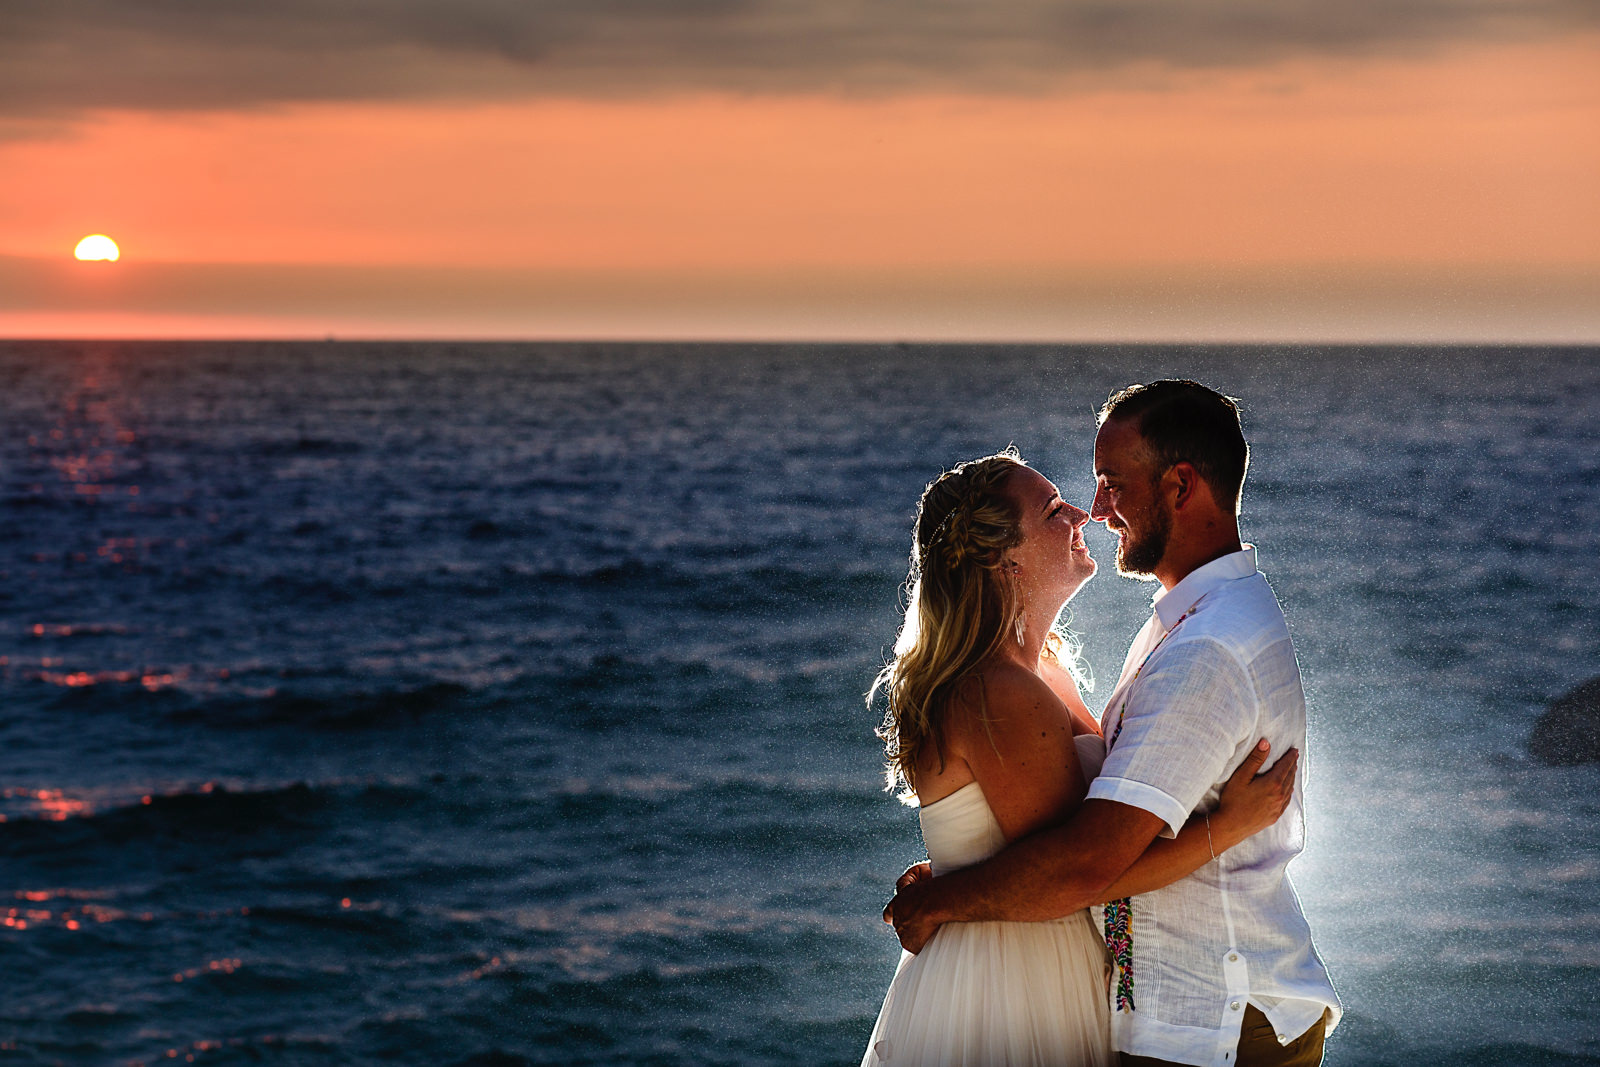 bride-groom-ocean-sunset-backlight-love-wedding.jpg